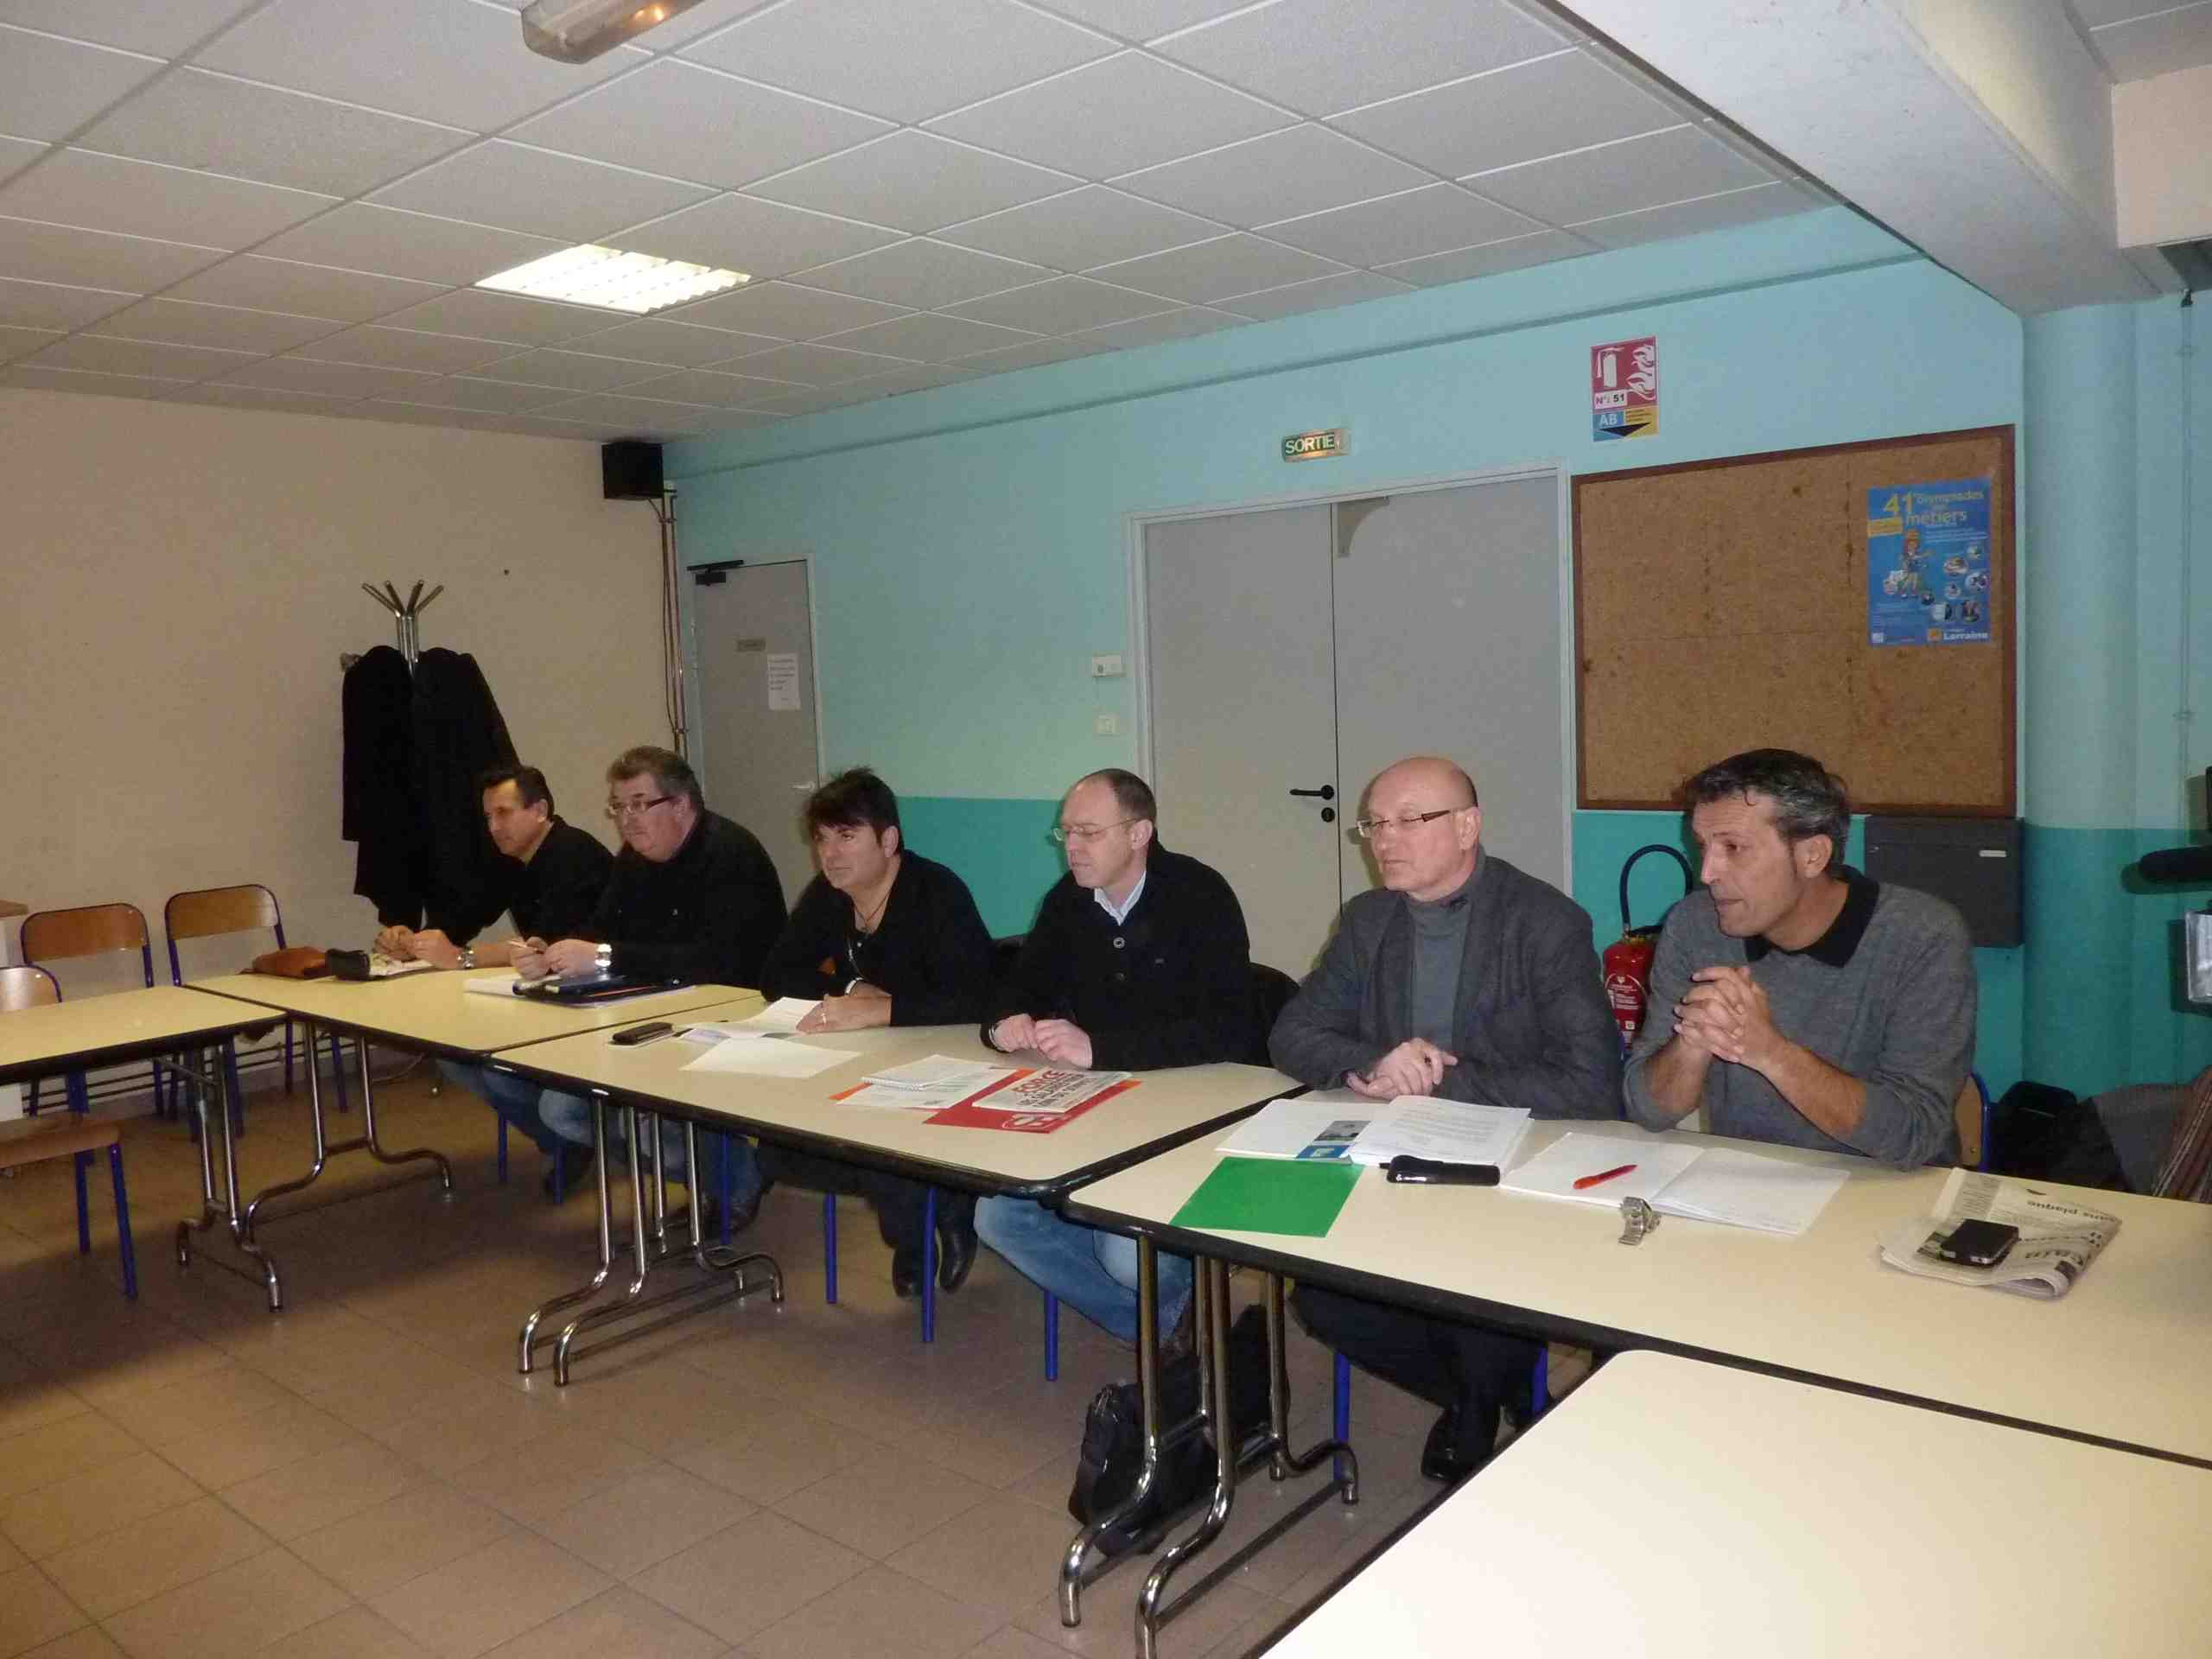 SYNDICATS_FLORANGE_201201